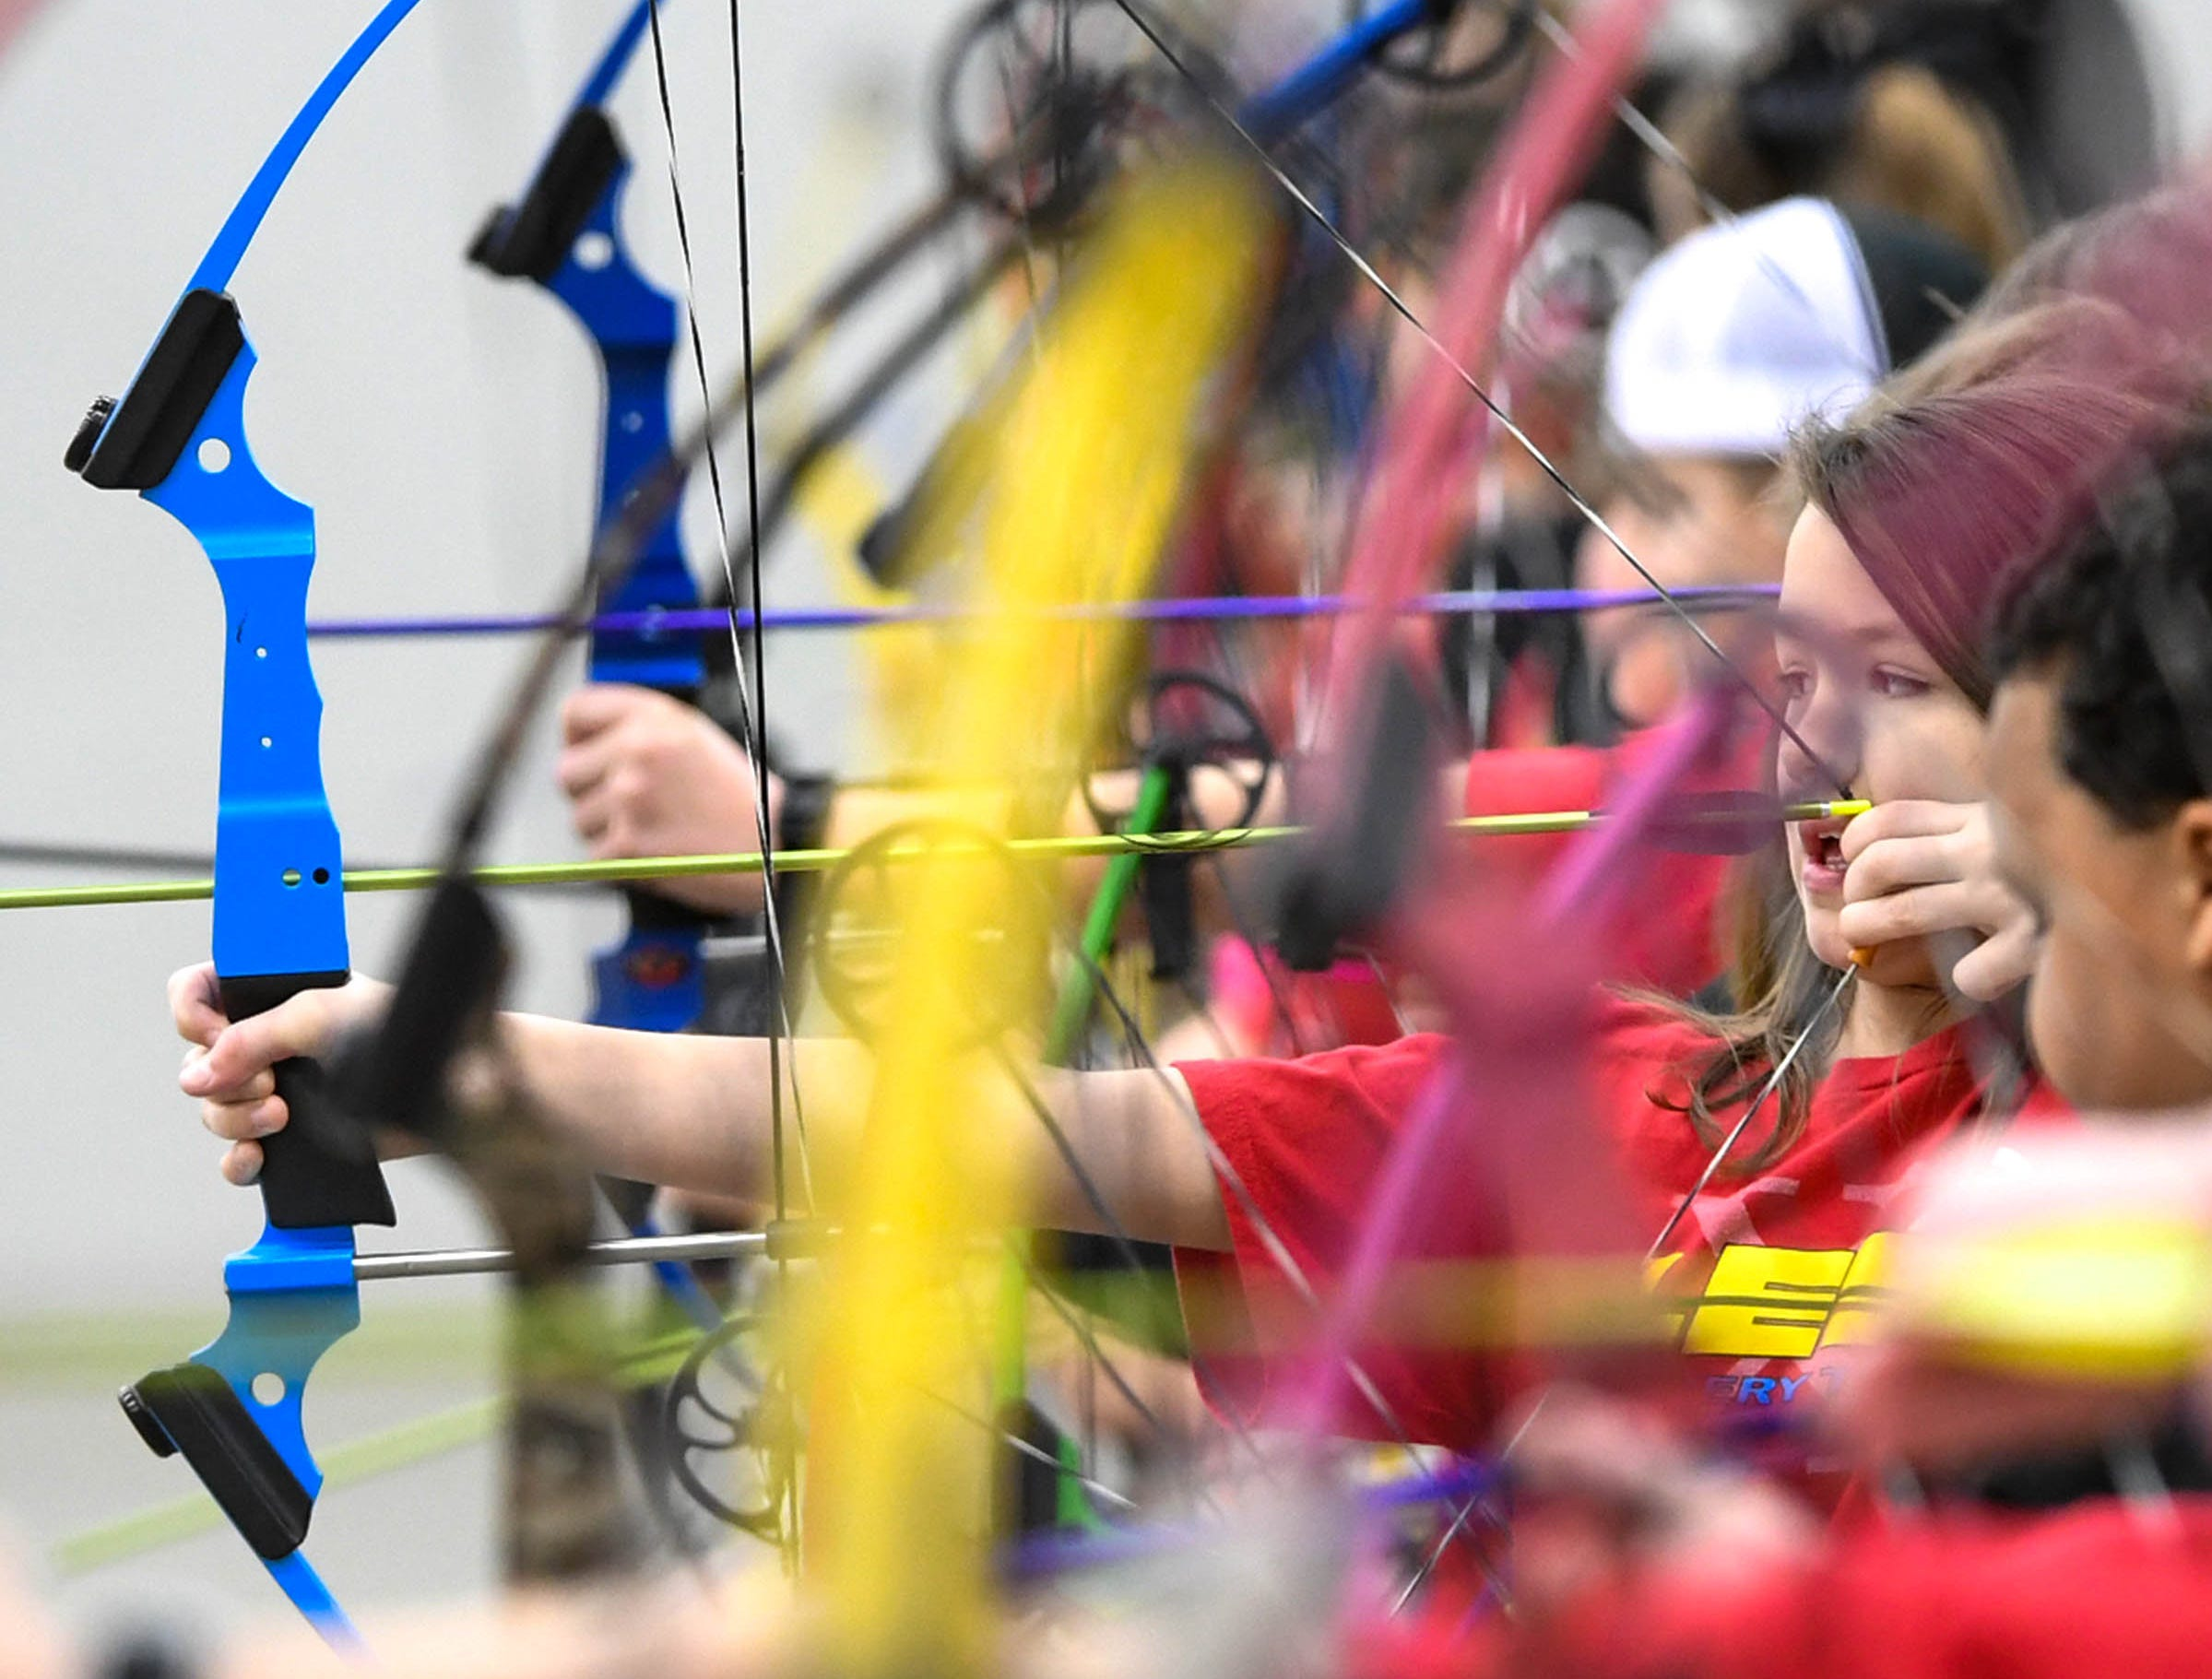 Jayda Masters, a fourth-grade LaFrace Elementary School student, gets ready to release an arrow during the South Carolina Department of Natural Resources regional National Archery in the Schools Program (NASP) regional competition at the Anderson Civic Center Wednesday.  The program, which awards $50,000 in scholarships to high school seniors, is a joint venture between state departments of Education and Wildlife. The competition in Anderson, leading up to the state finals March 26-28 in Sumter, had 950 children from 14 elementary and 23 high schools around the state.